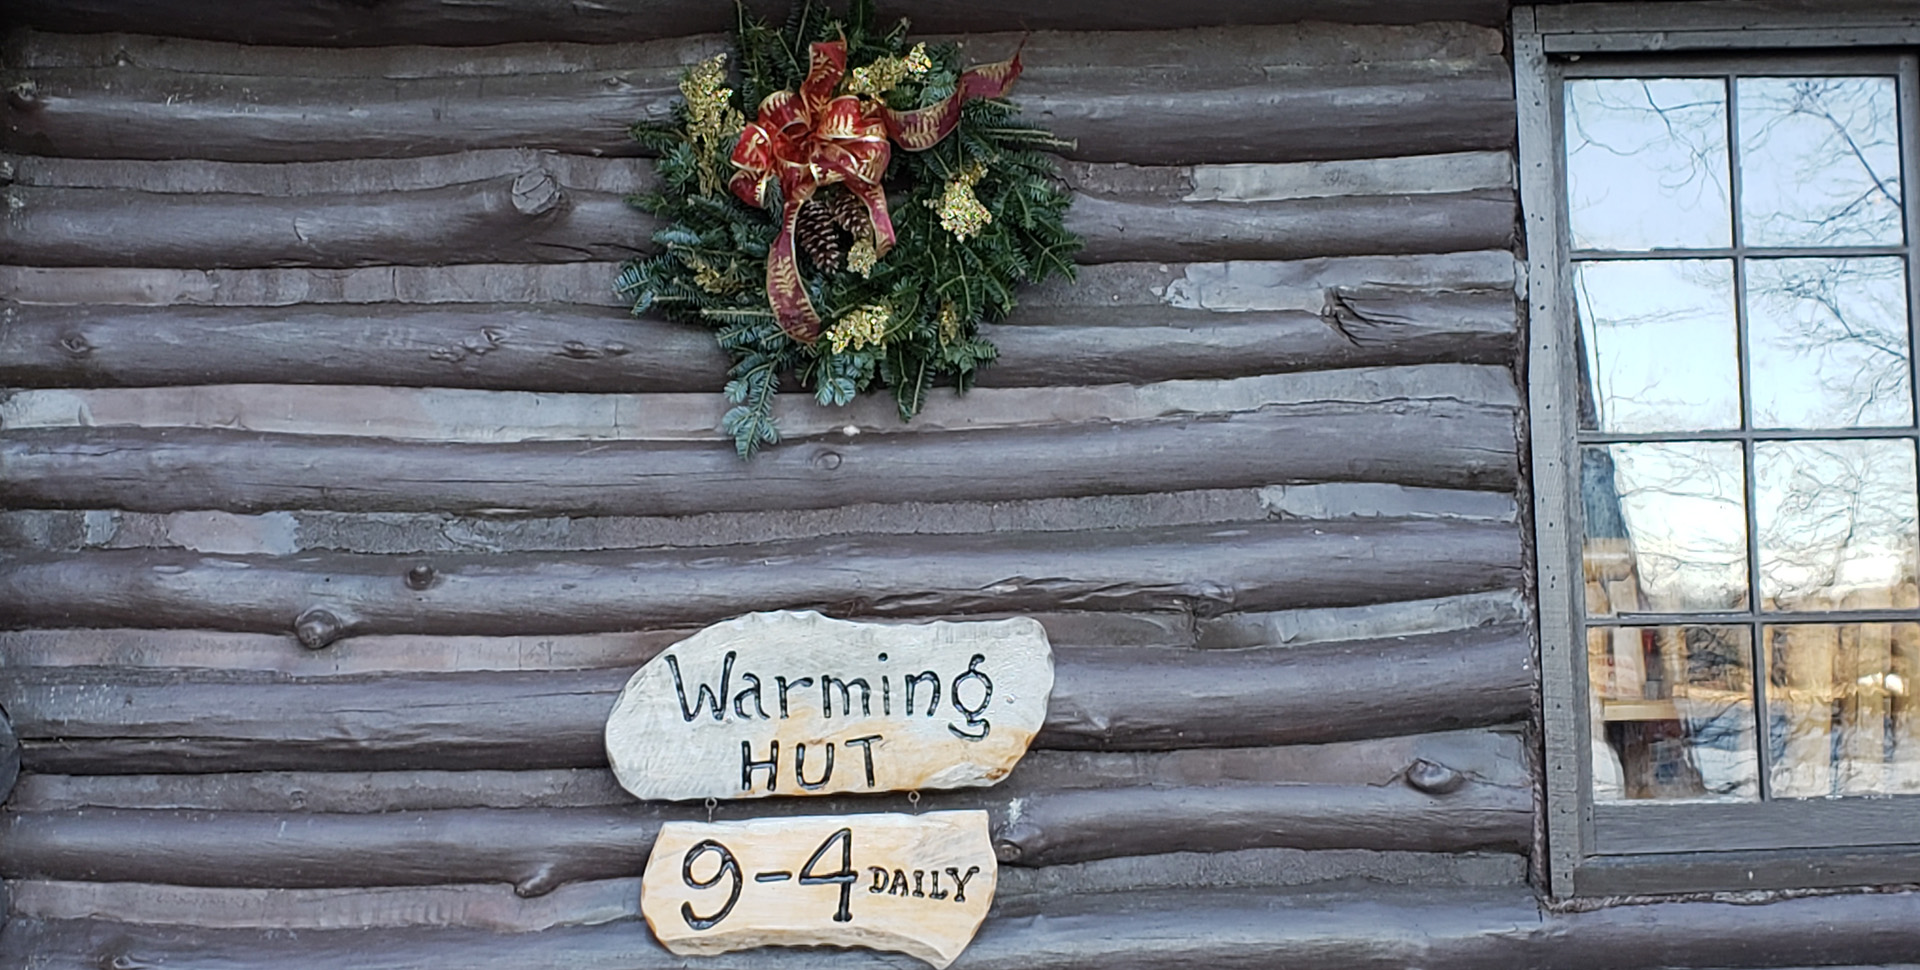 Warming Hut Open Daily